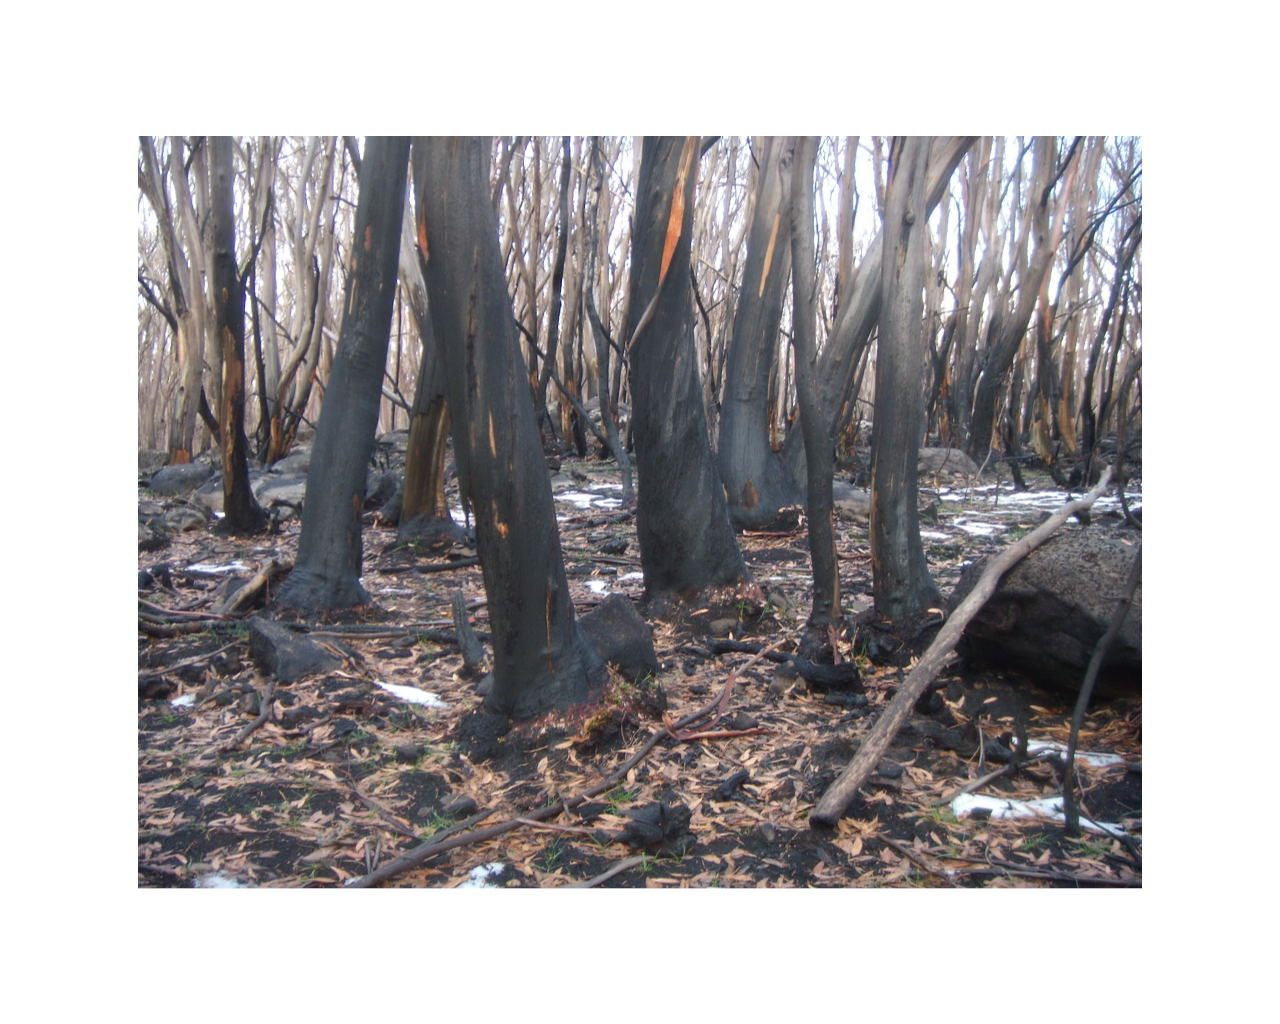 Lake Mountain Leadbeater's Possum habitat burnt in the 2009 bushfires. Photo: Pam Miskin.